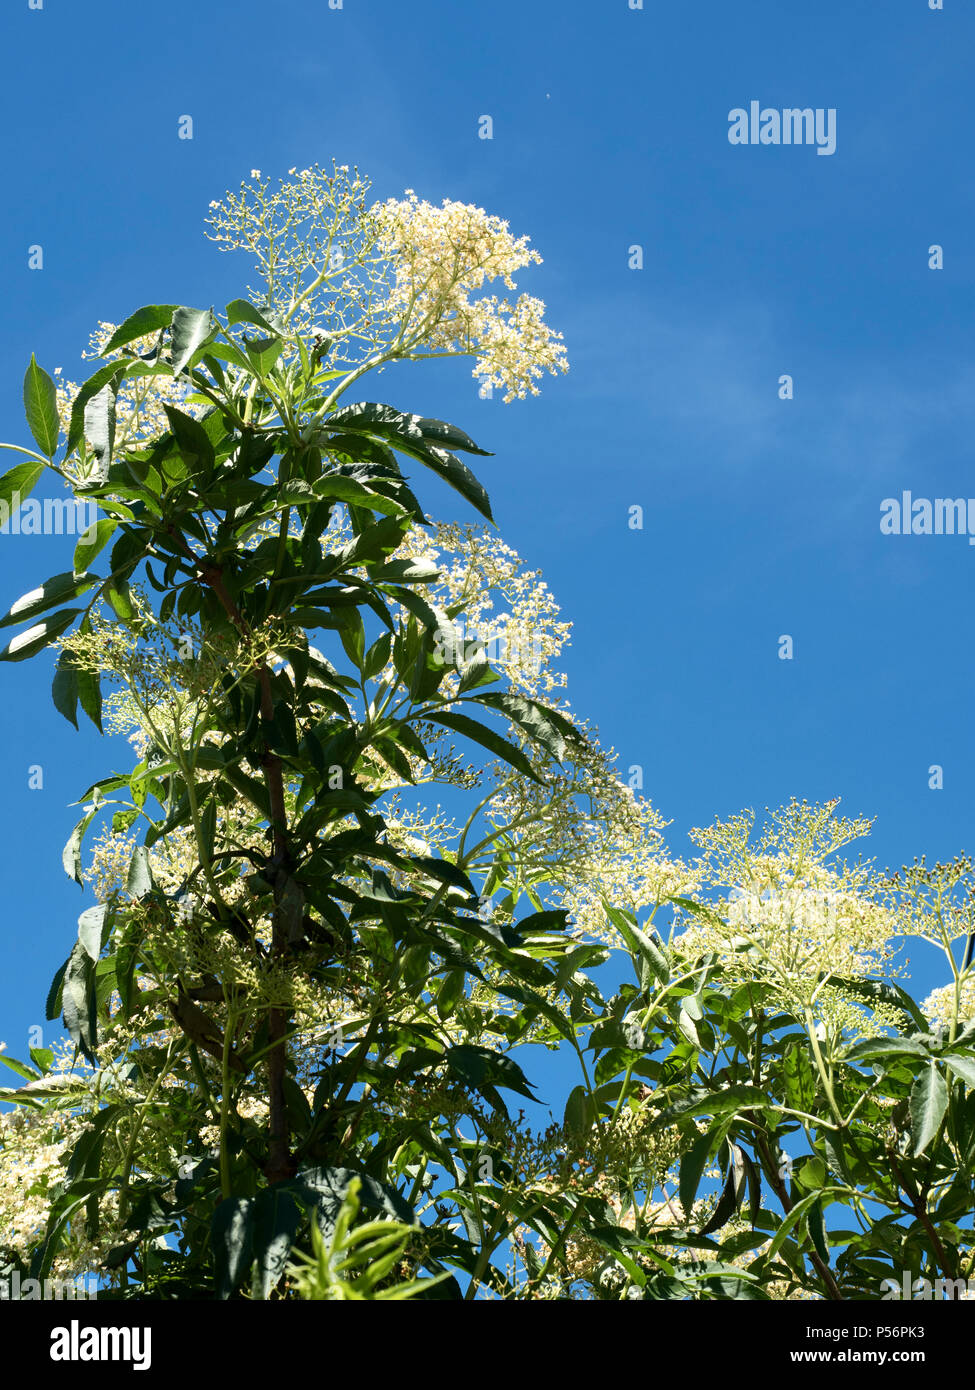 White elderflowers in a hedgerow against a blue sky at Knaresborough North Yorkshire England - Stock Image